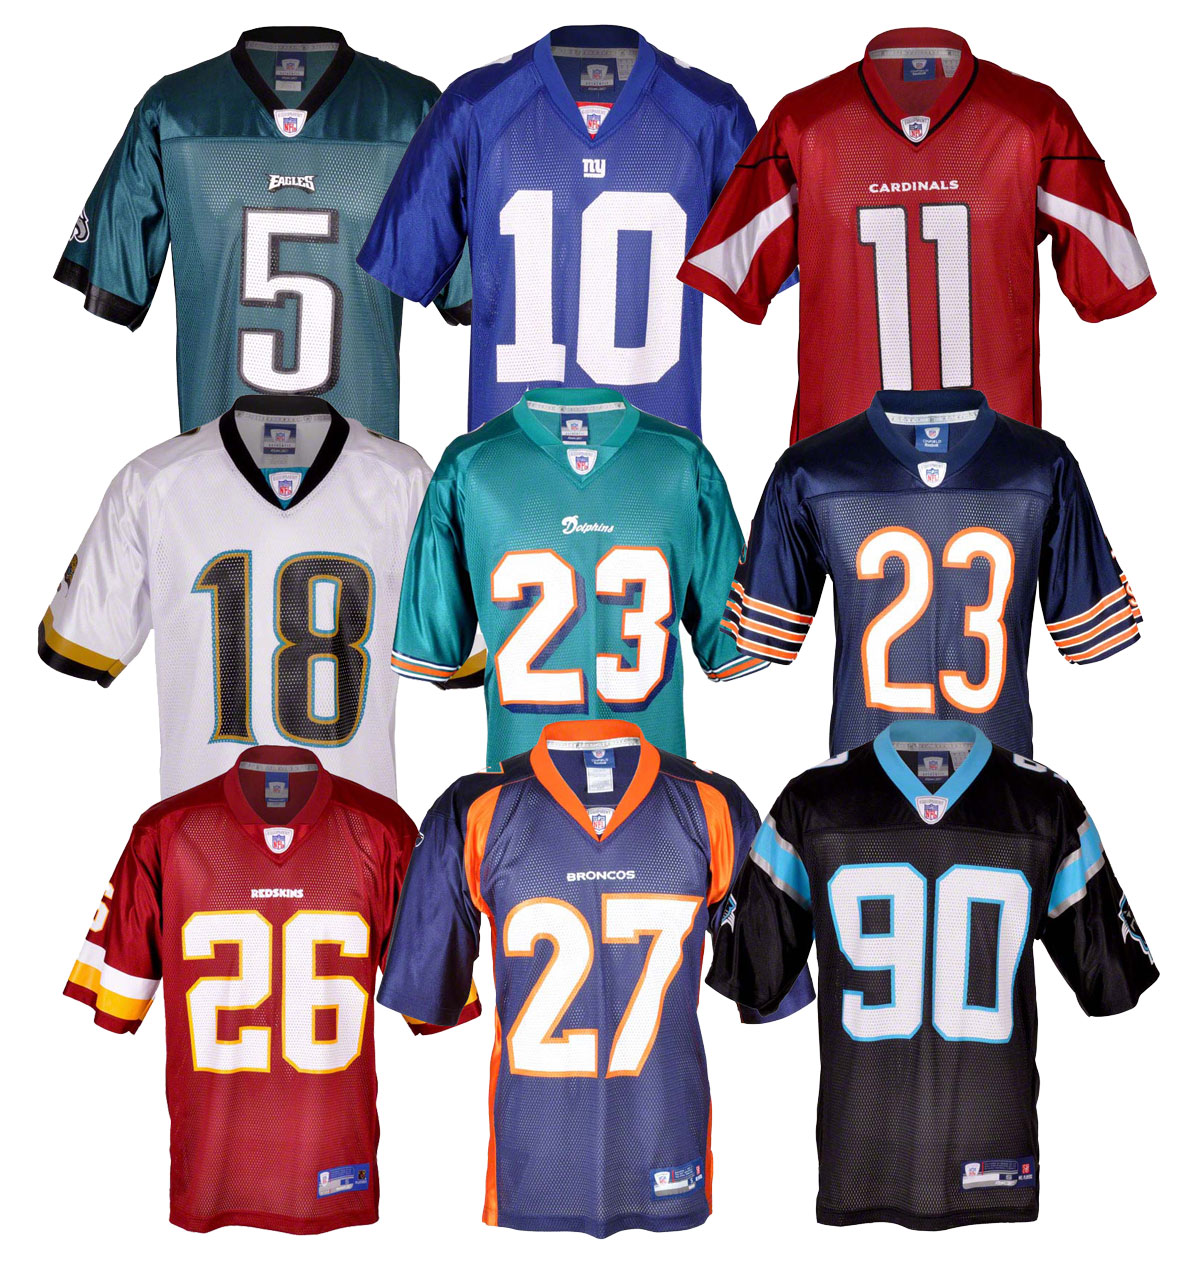 nfl football trikot ny giants dolphins broncos jaguars. Black Bedroom Furniture Sets. Home Design Ideas